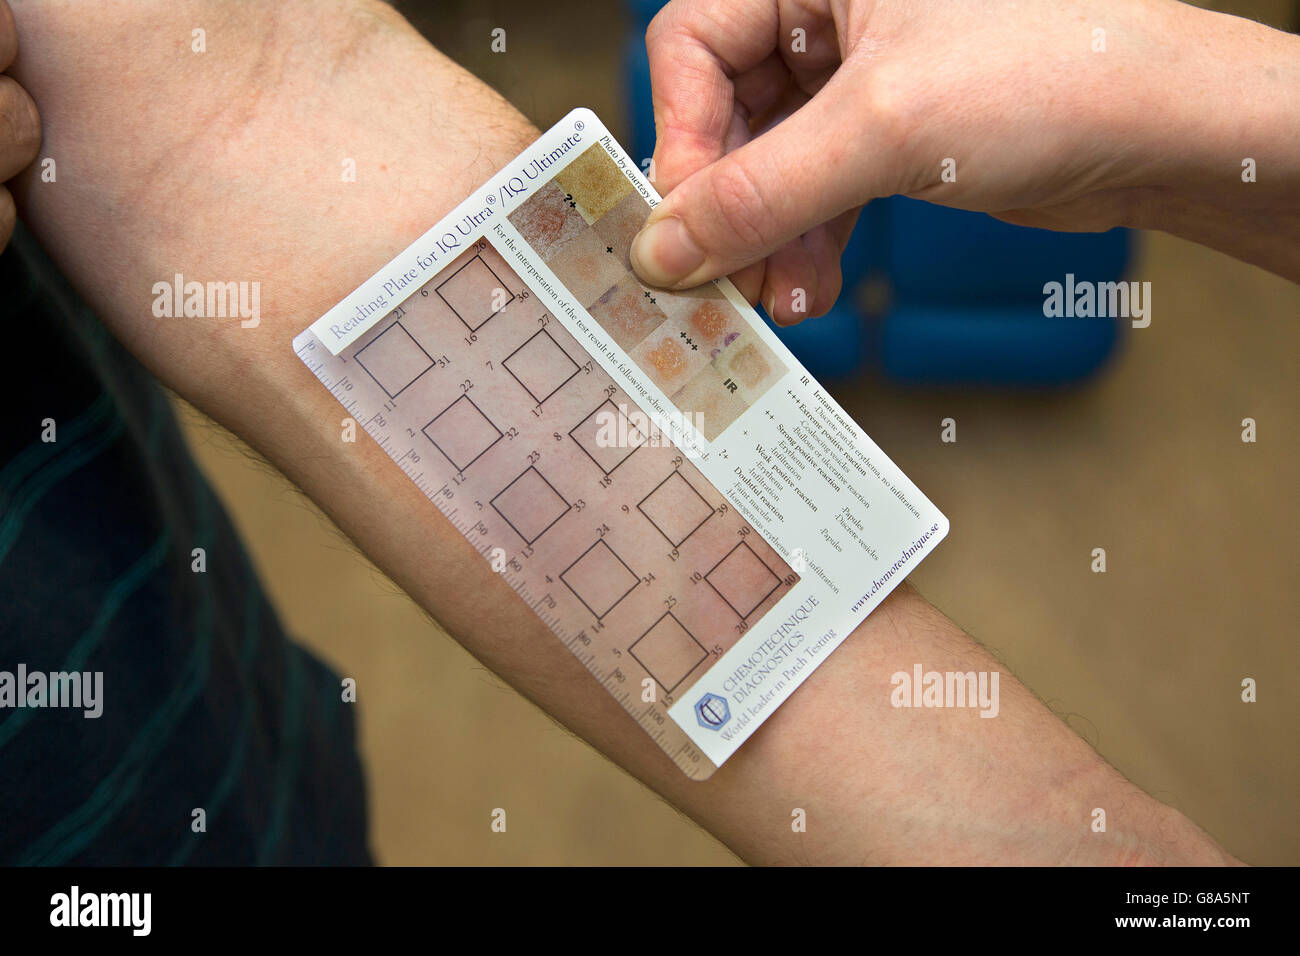 Dermatologist using a  IQ Ultra patch to test for allergies - Stock Image